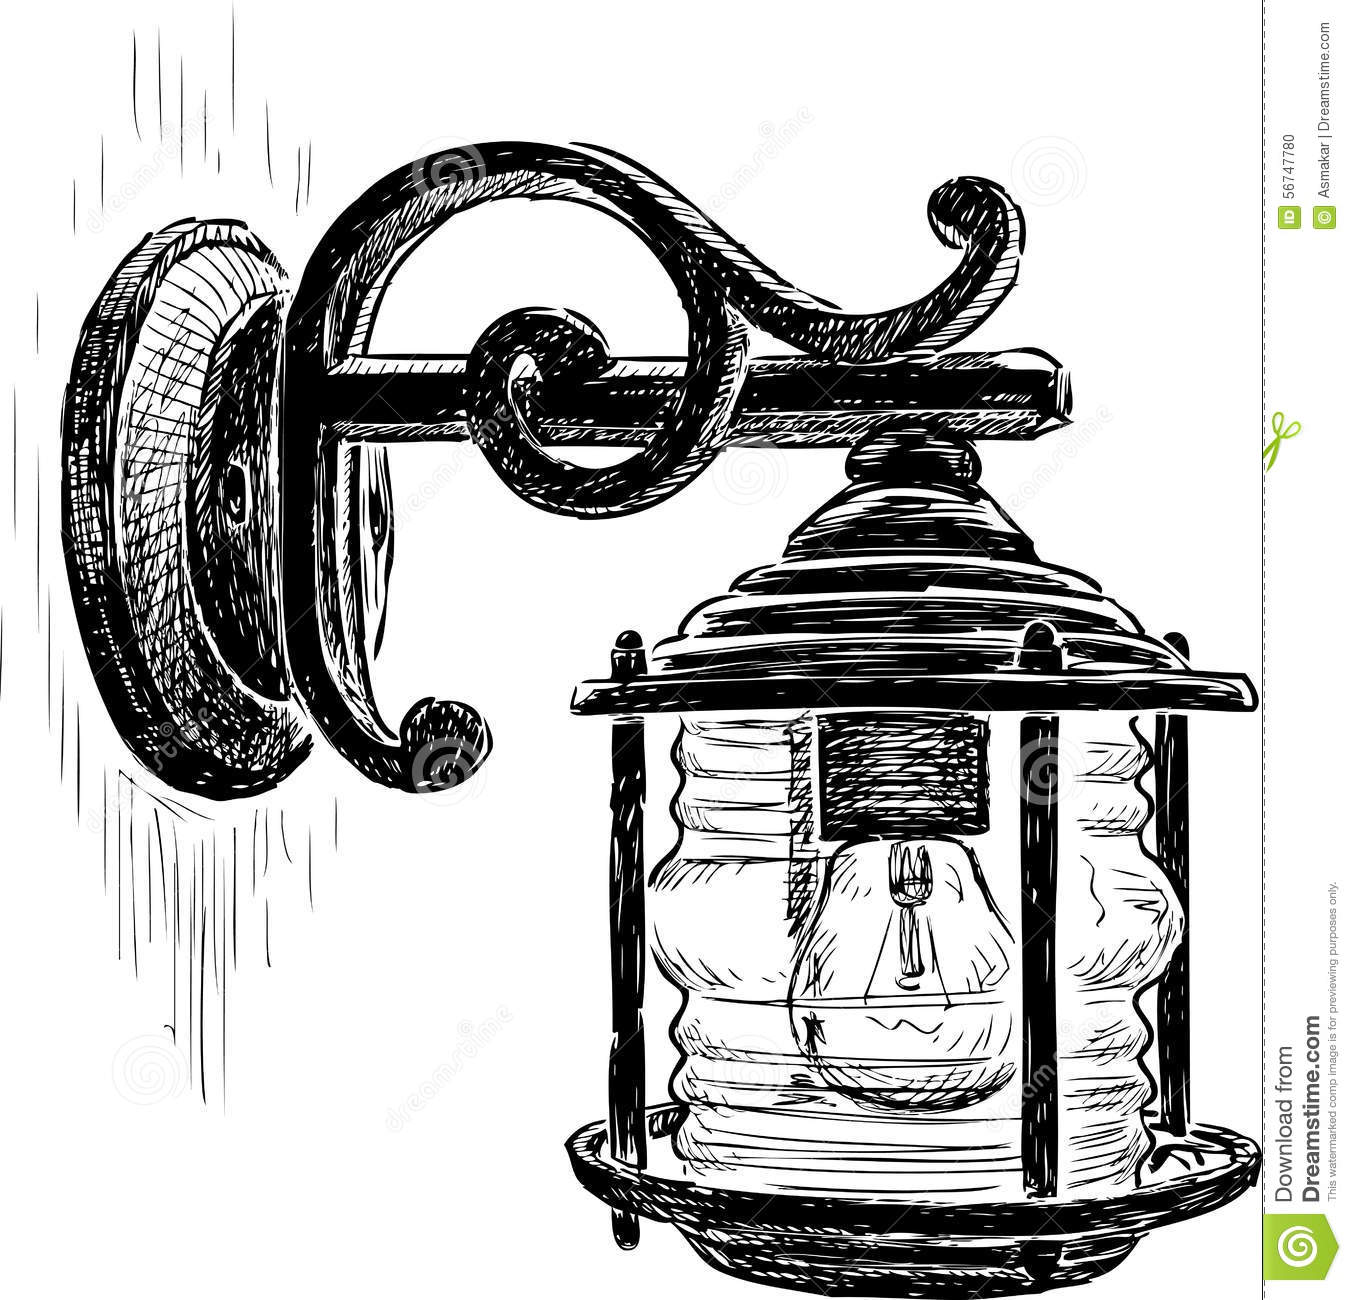 Hkly 3338dz additionally Night Street Road And Lanterns Vector Black Illustration Vector 2043897 also Bulb Identification Guide as well Belgard Holland Stone Patterns Pavers San Diego additionally Stock Illustration Vintage Street L  Vector Drawing Ancient Light Image56747780. on landscape outdoor lighting